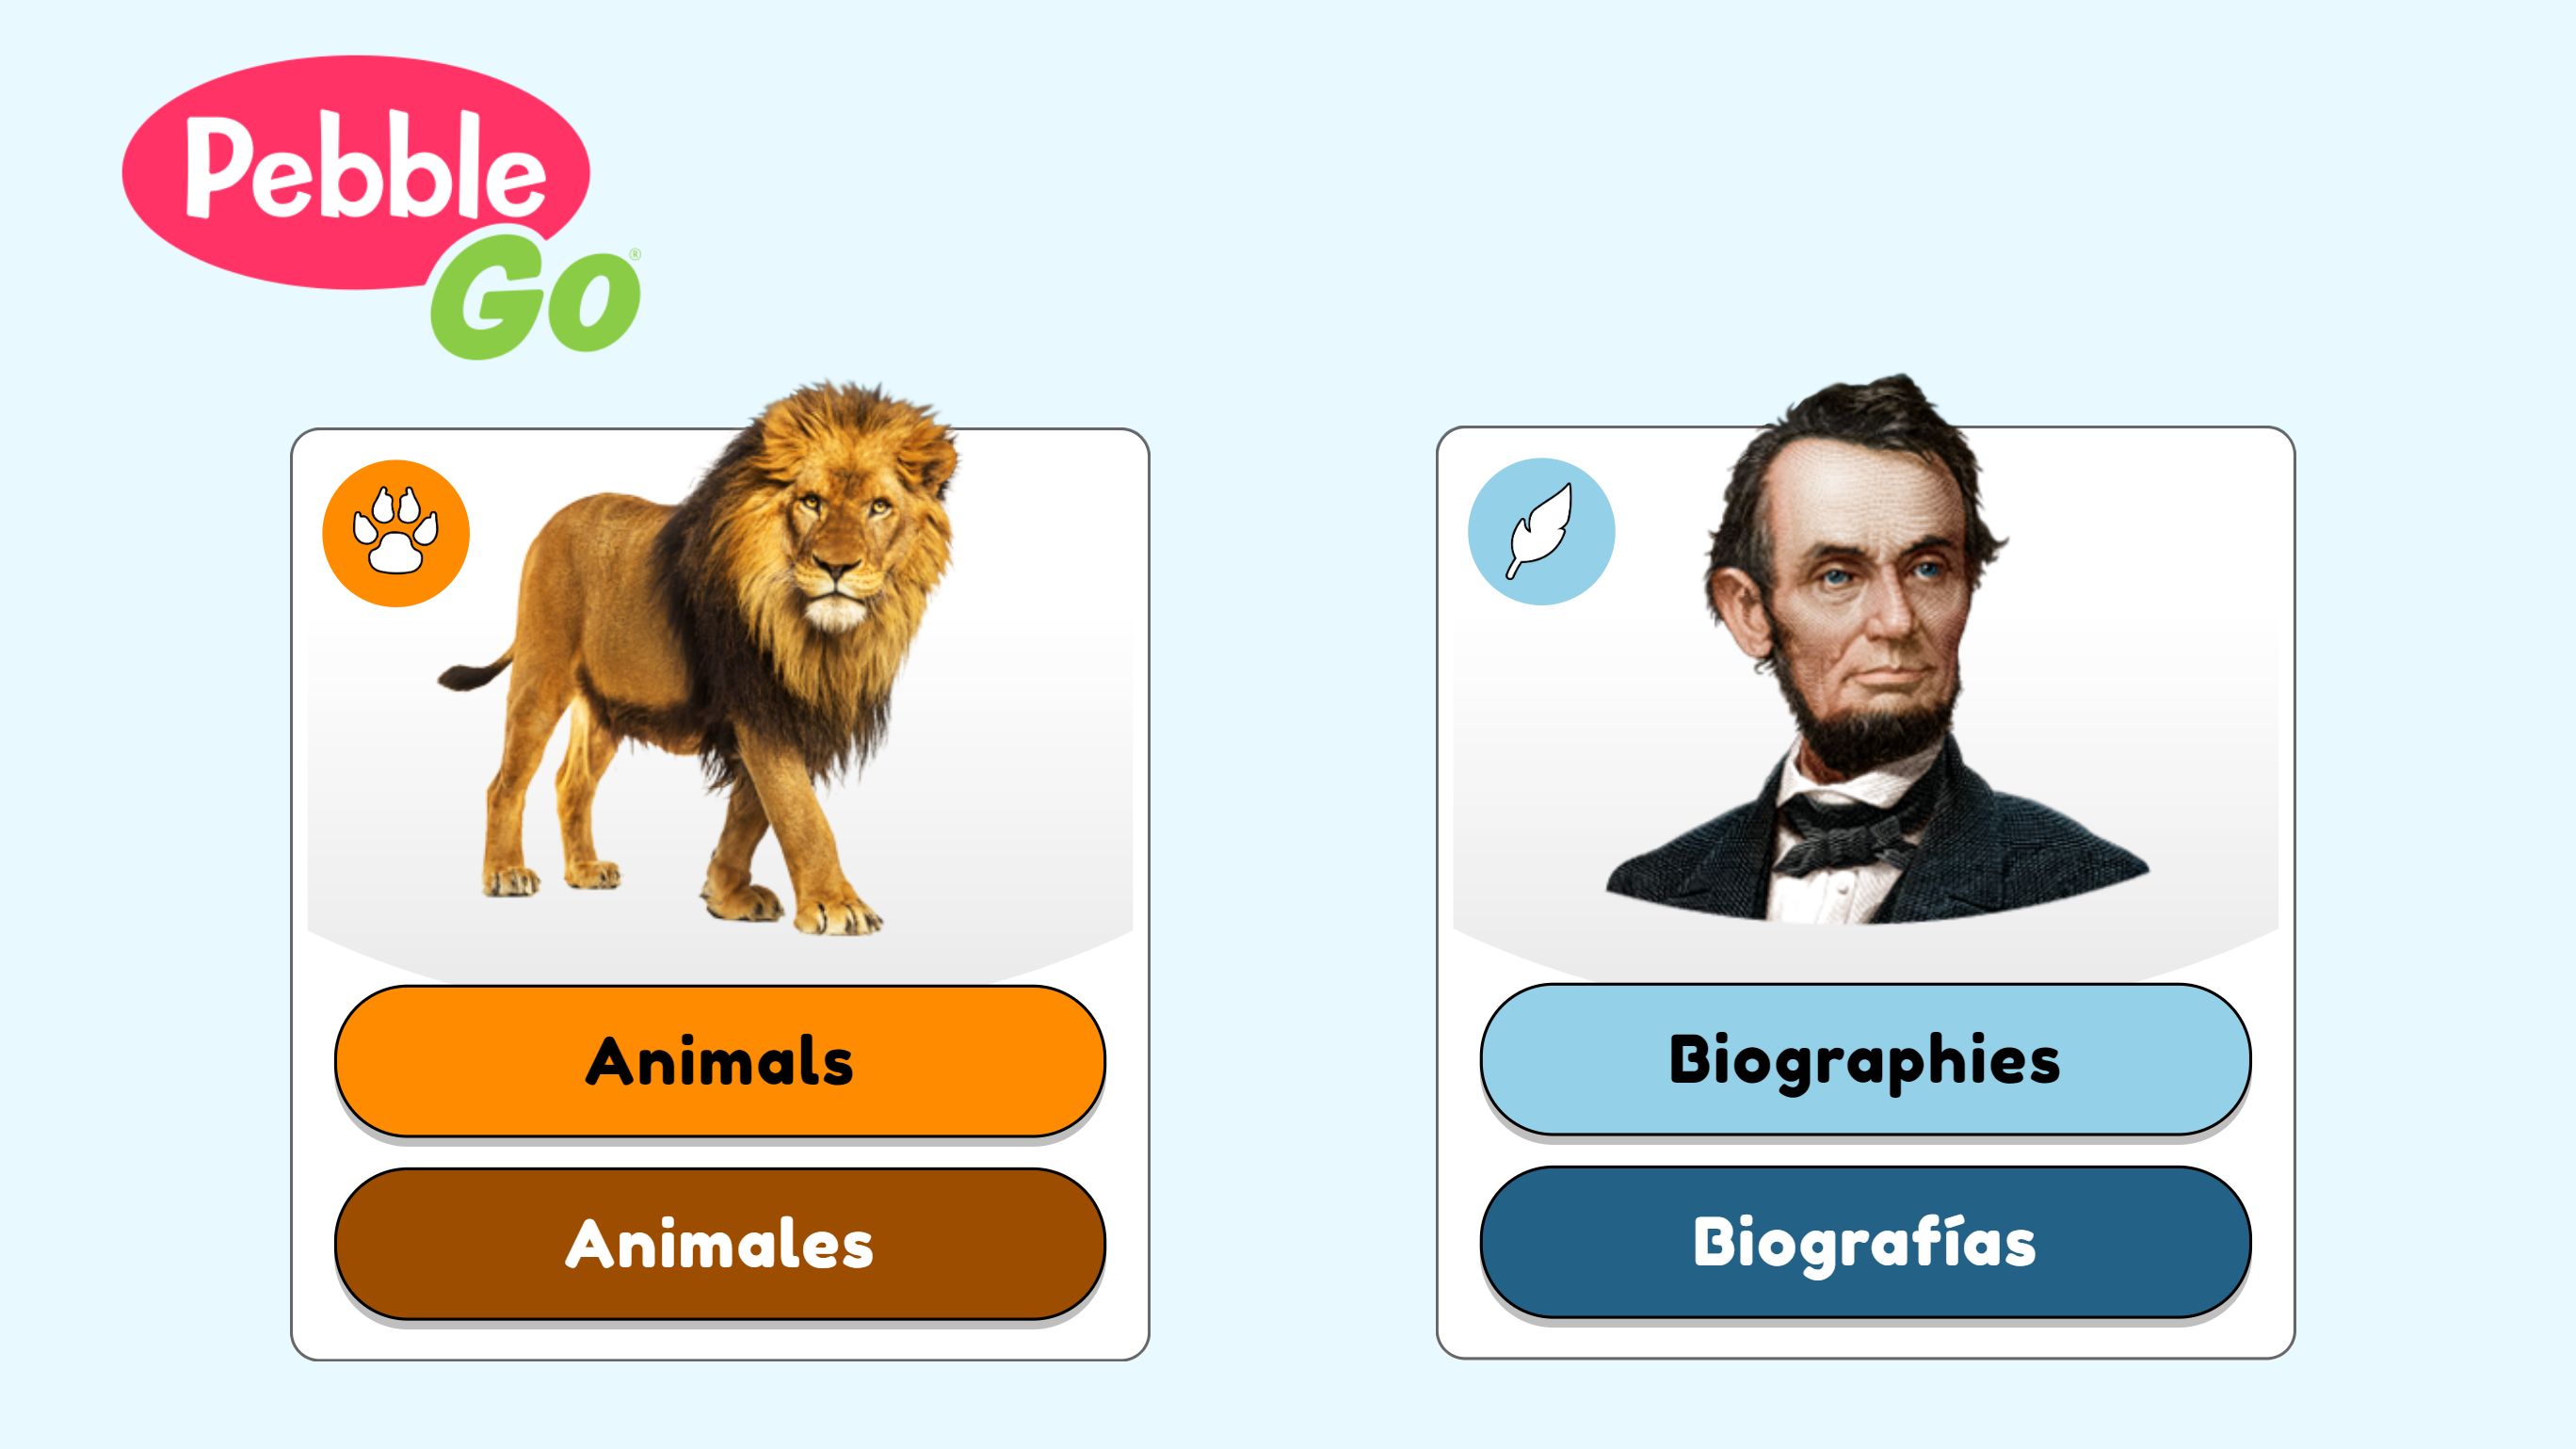 A screencap of Pebble Go and its Animals and Biographies sections.